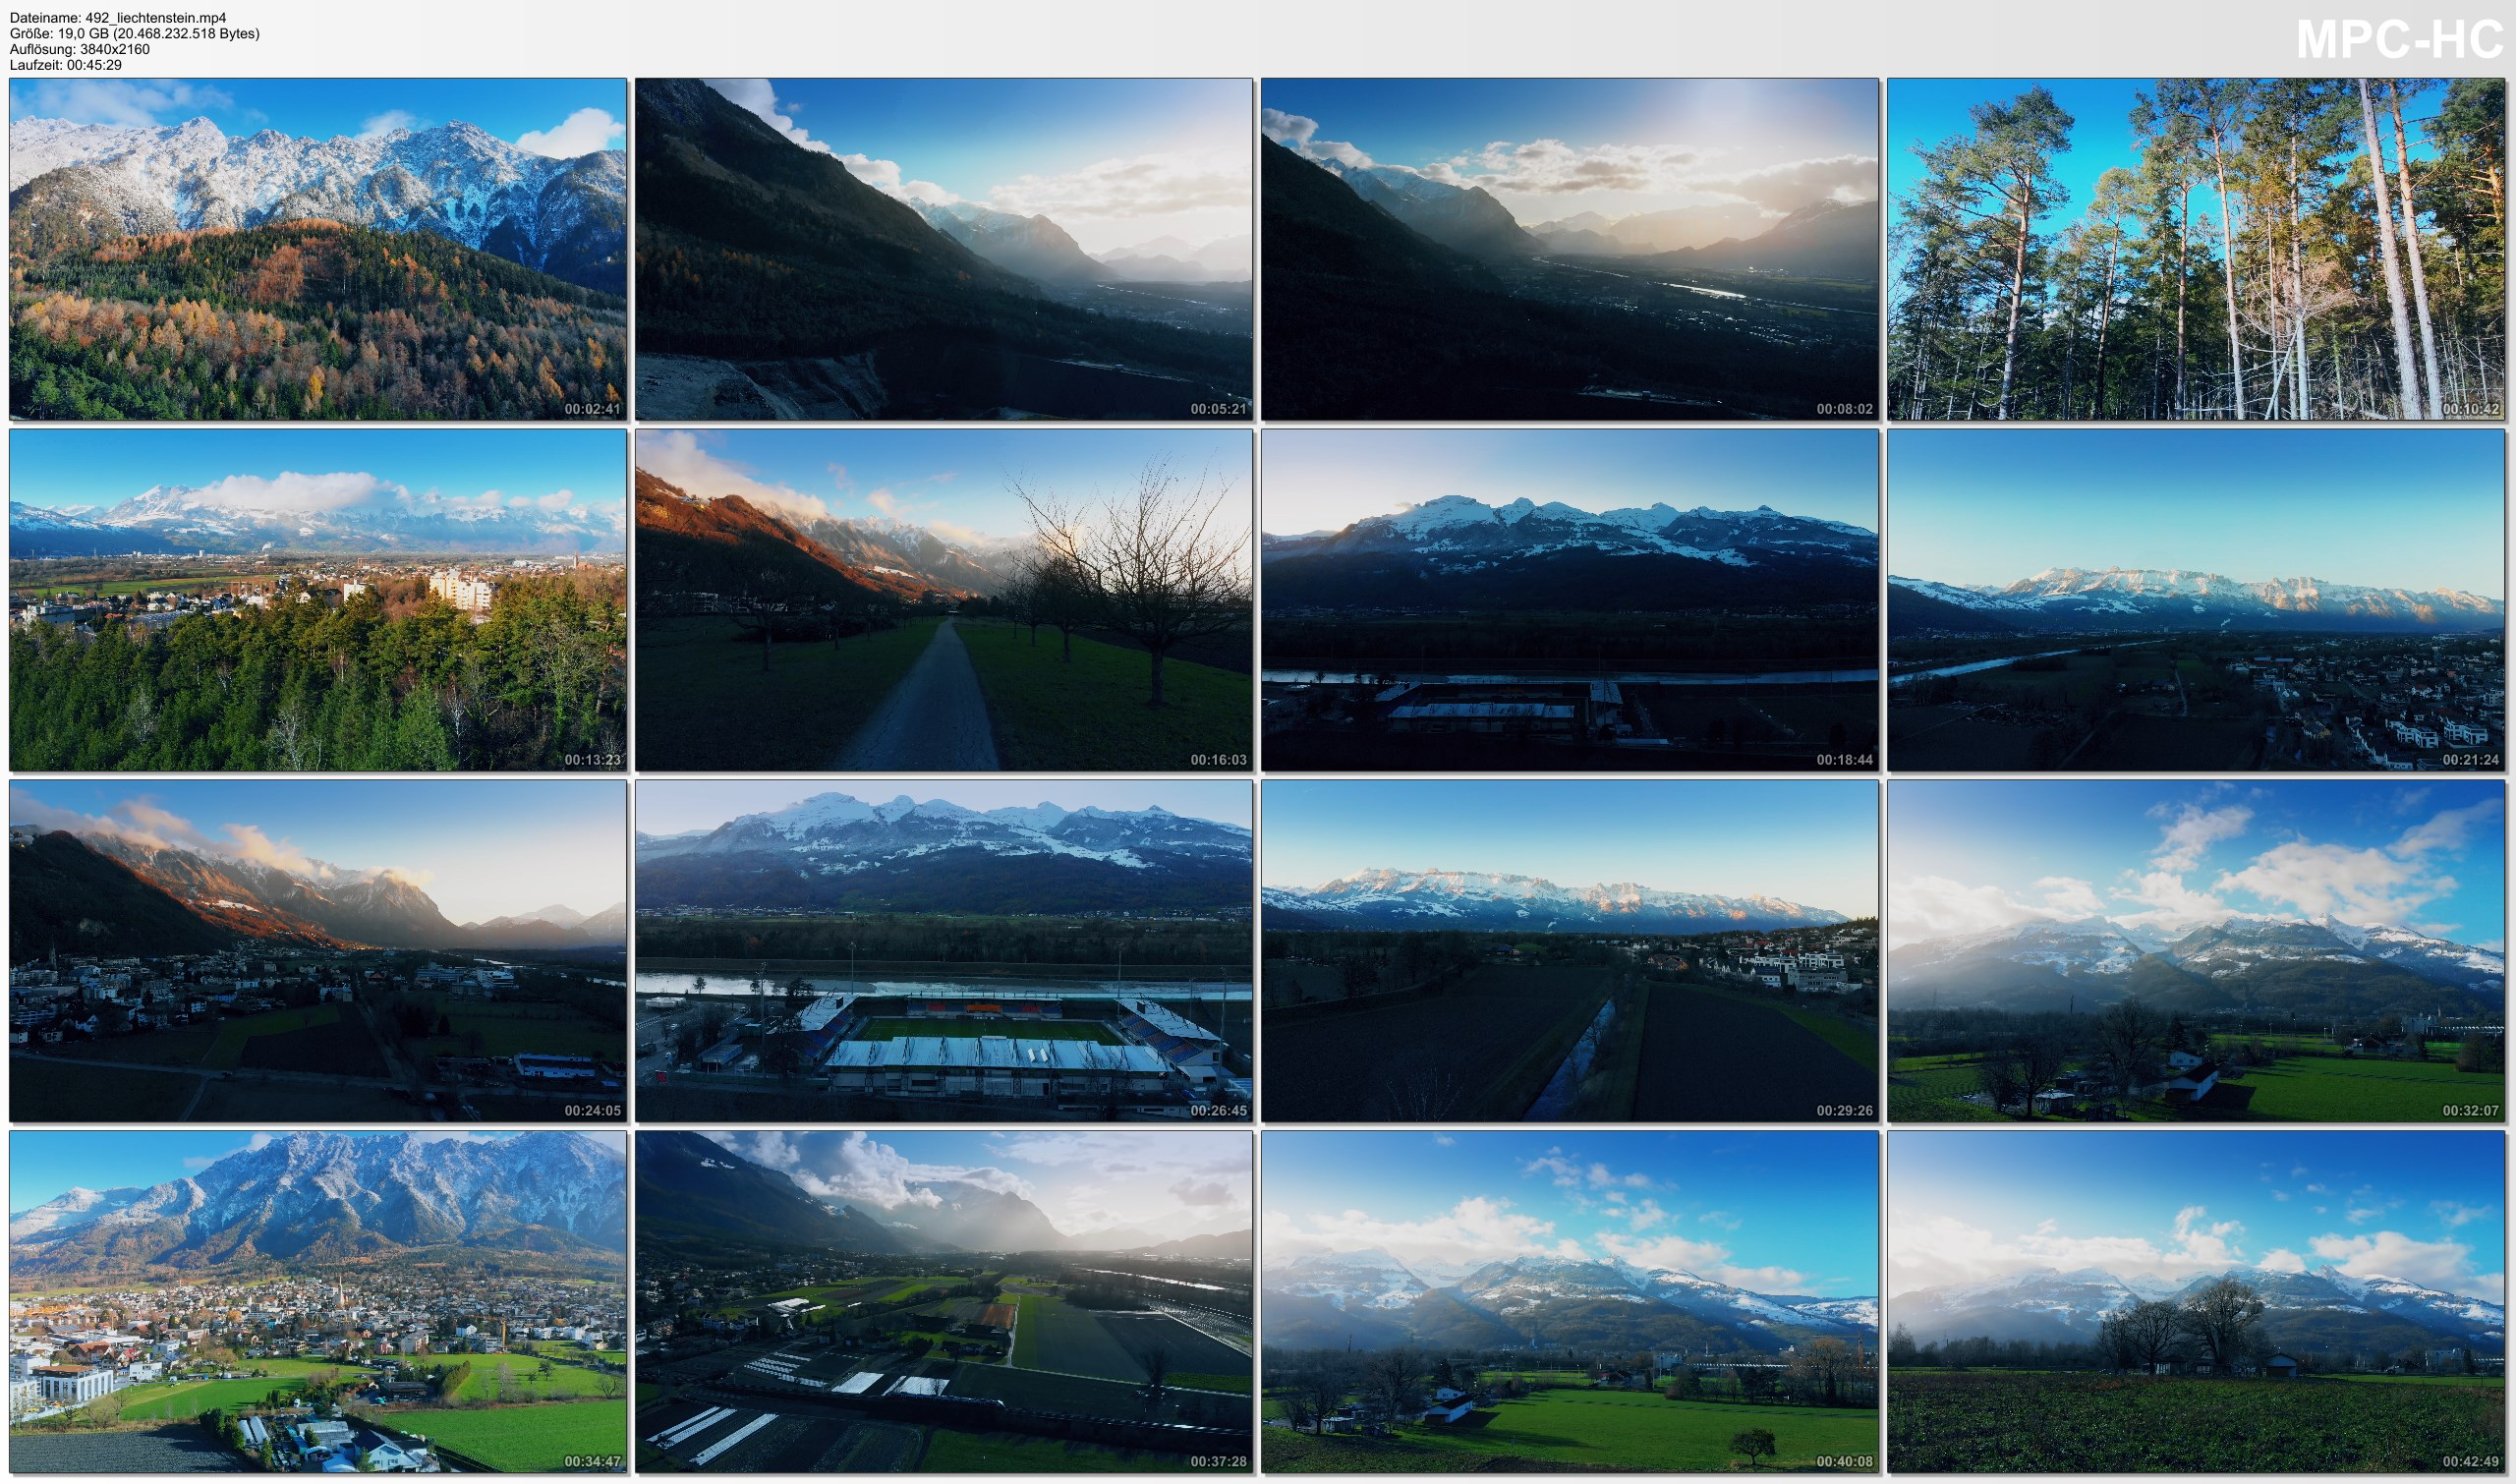 Drone Pictures from Video 【4K】Drone RAW Footage | This is LIECHTENSTEIN 2020 | Vaduz | Schaan and More | UltraHD Stock Video